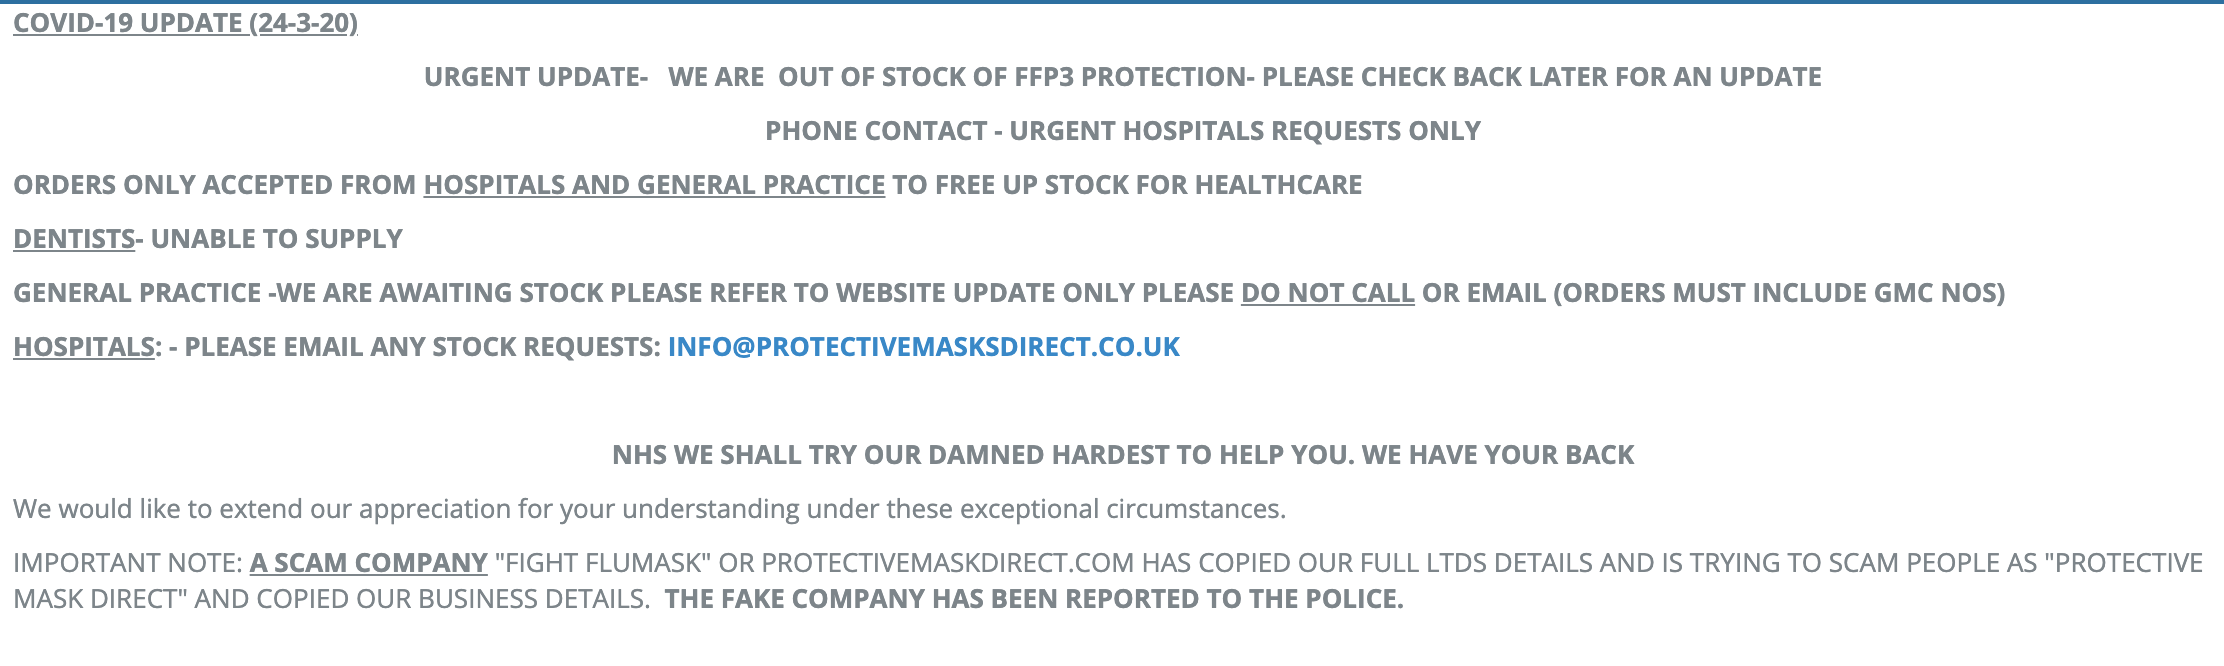 Protectivemaskdirect Com Has Been Scamming People Desperate For Coronavirus Masks